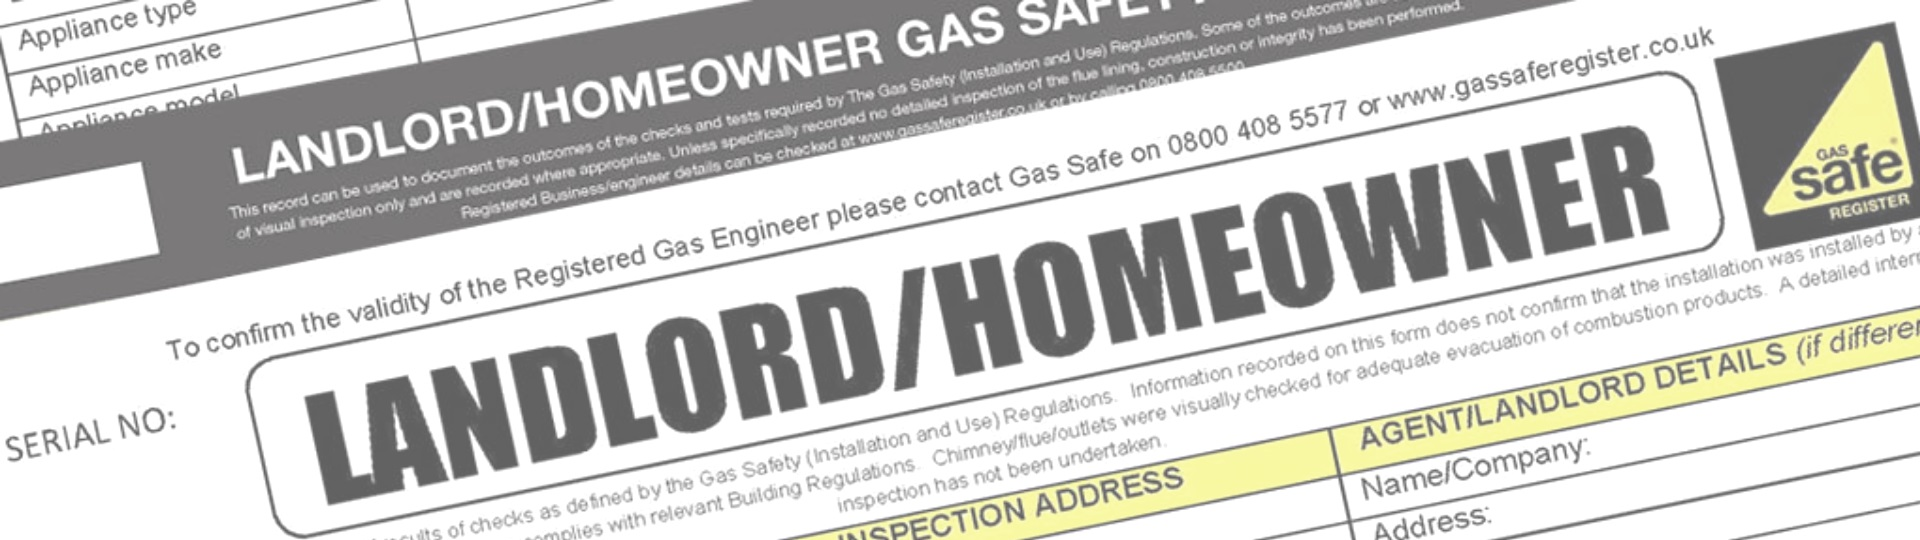 Gas Saftey Certificates Broomhill